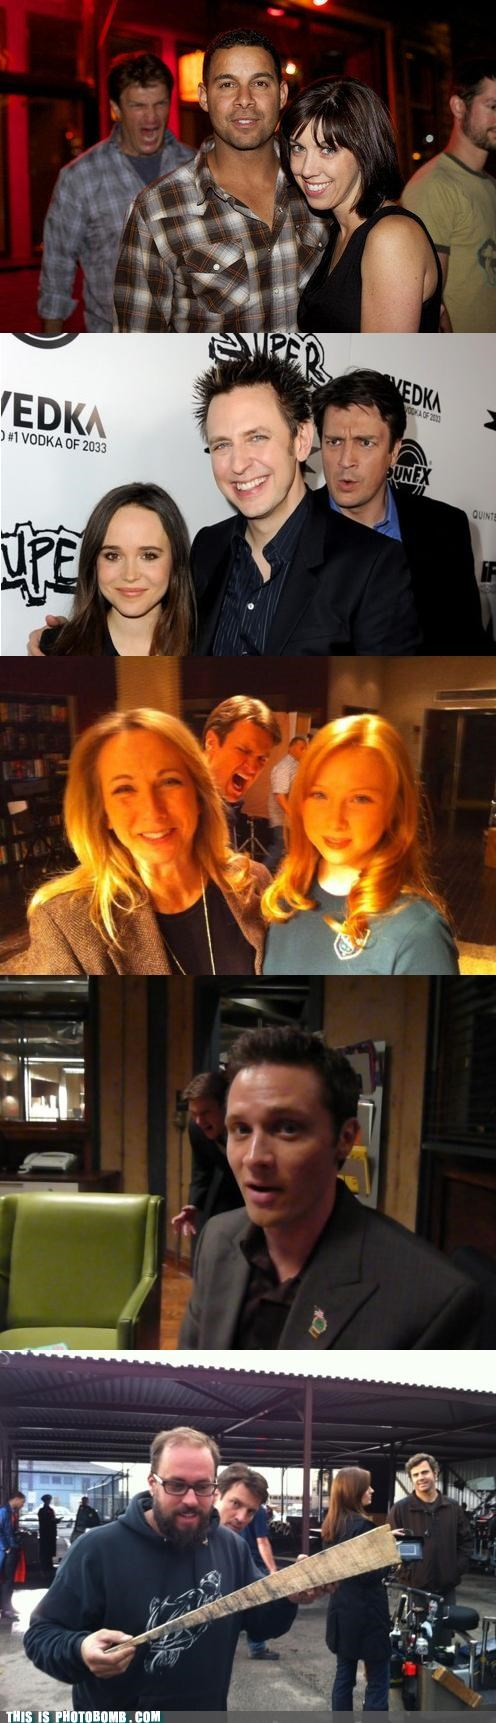 The art of photobombing by Nathan Fillion.